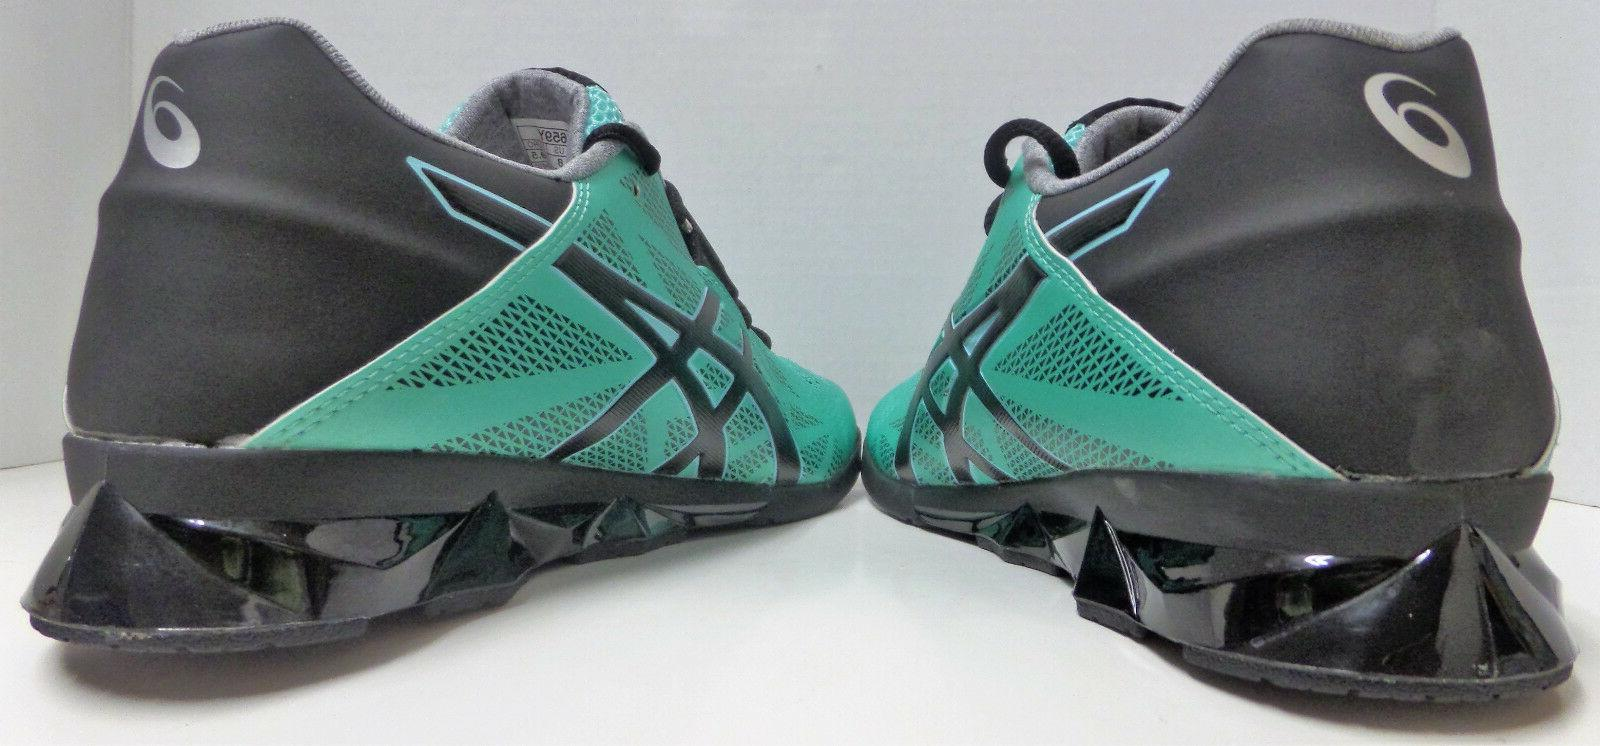 Asics Shoes Teal/Black/Silver